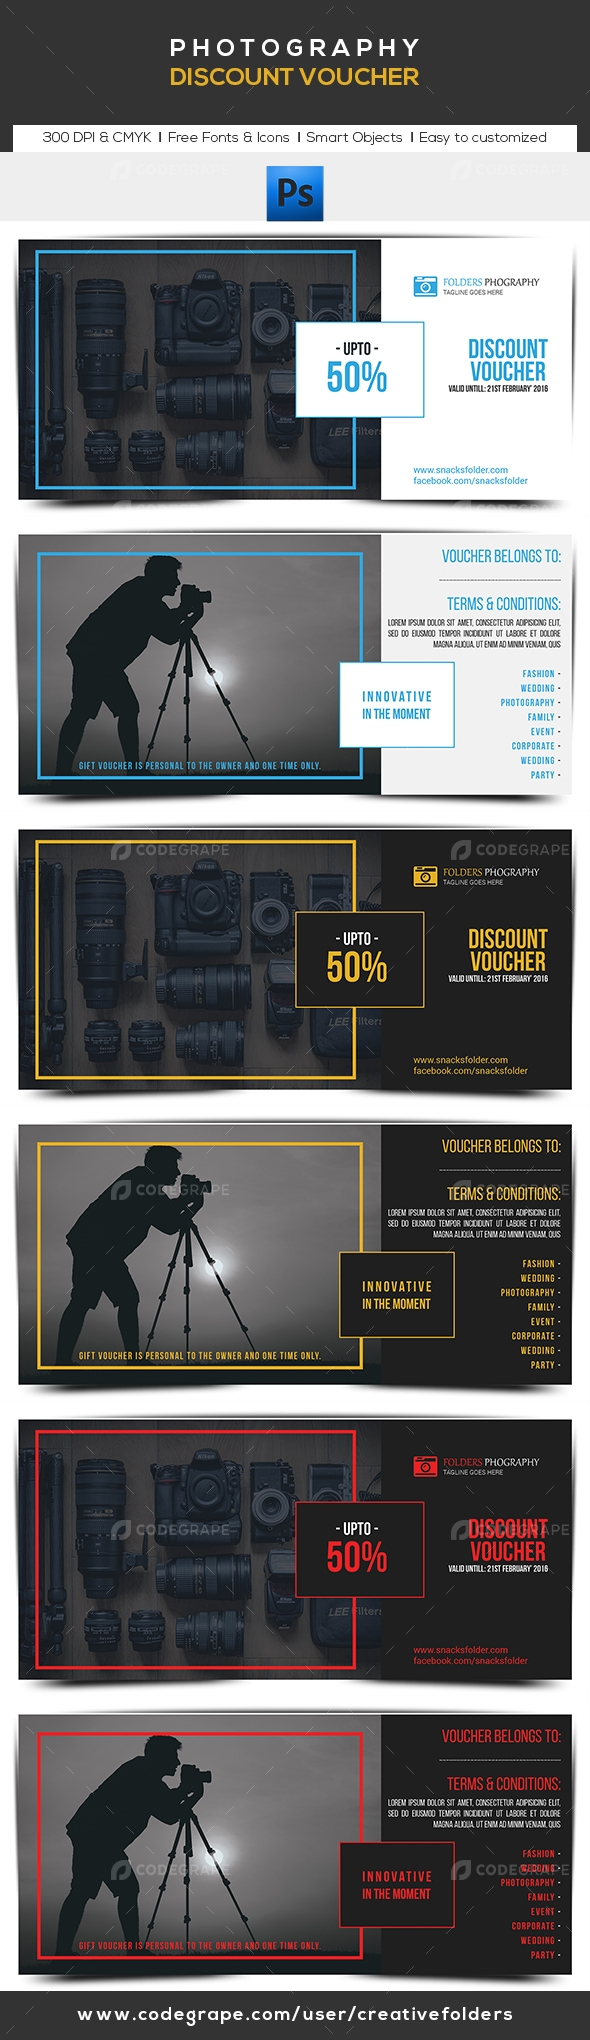 Photography Discount Voucher